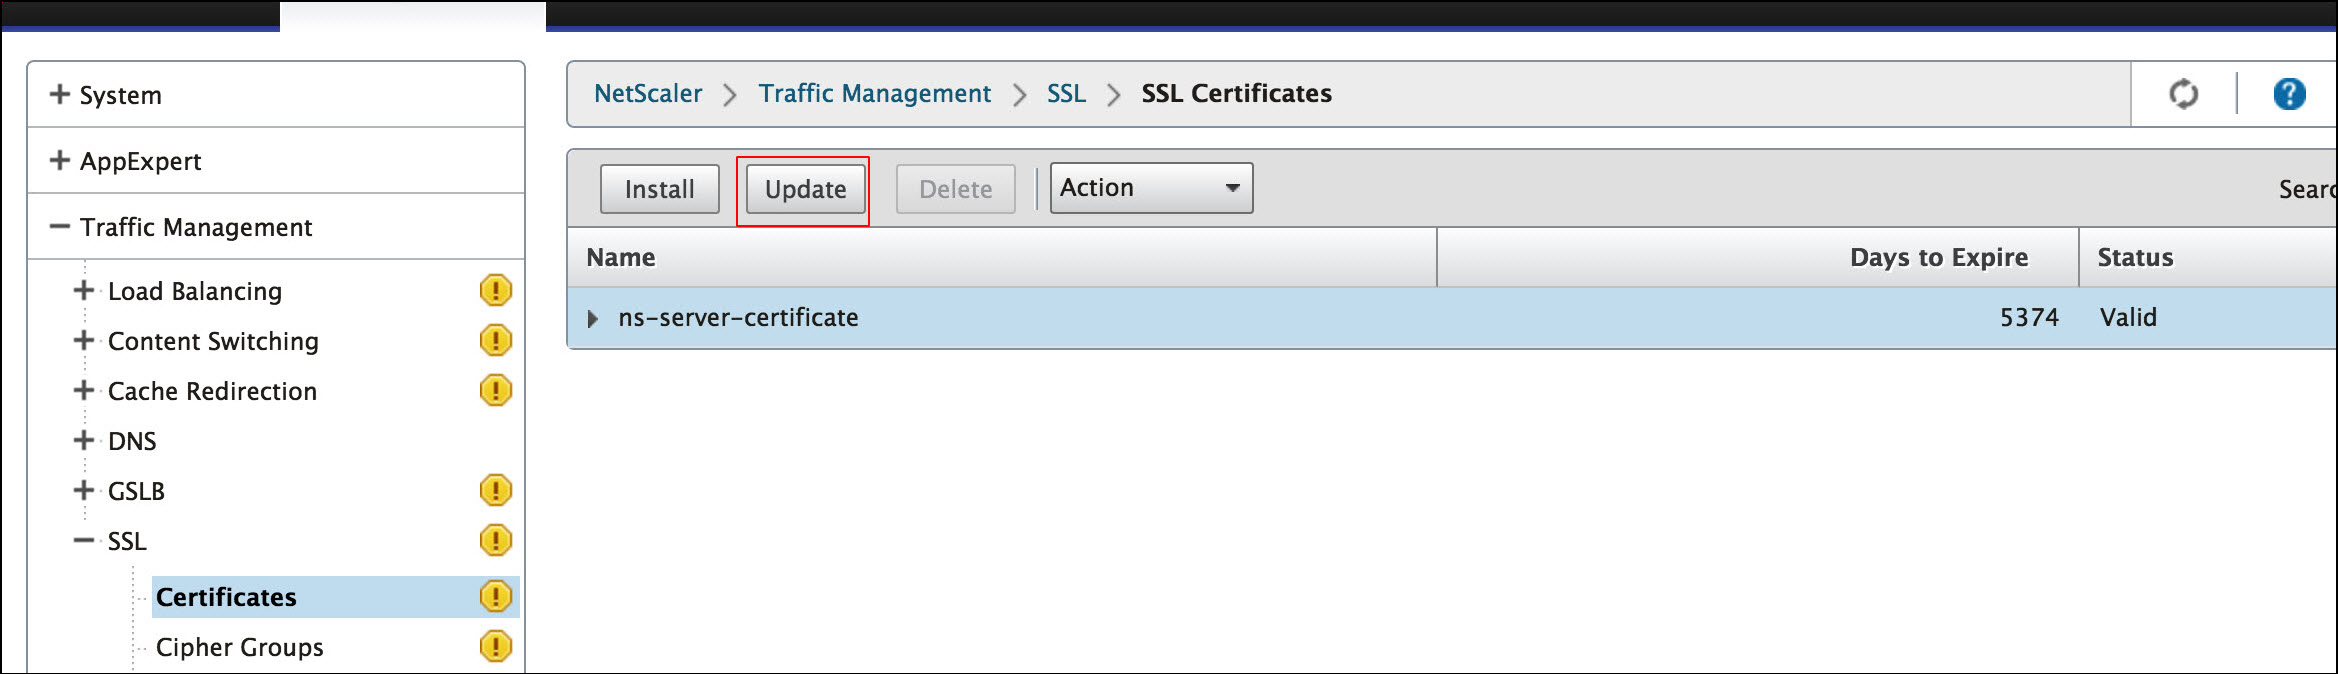 How To Replace The Default Certificate Of A Netscaler Appliance With